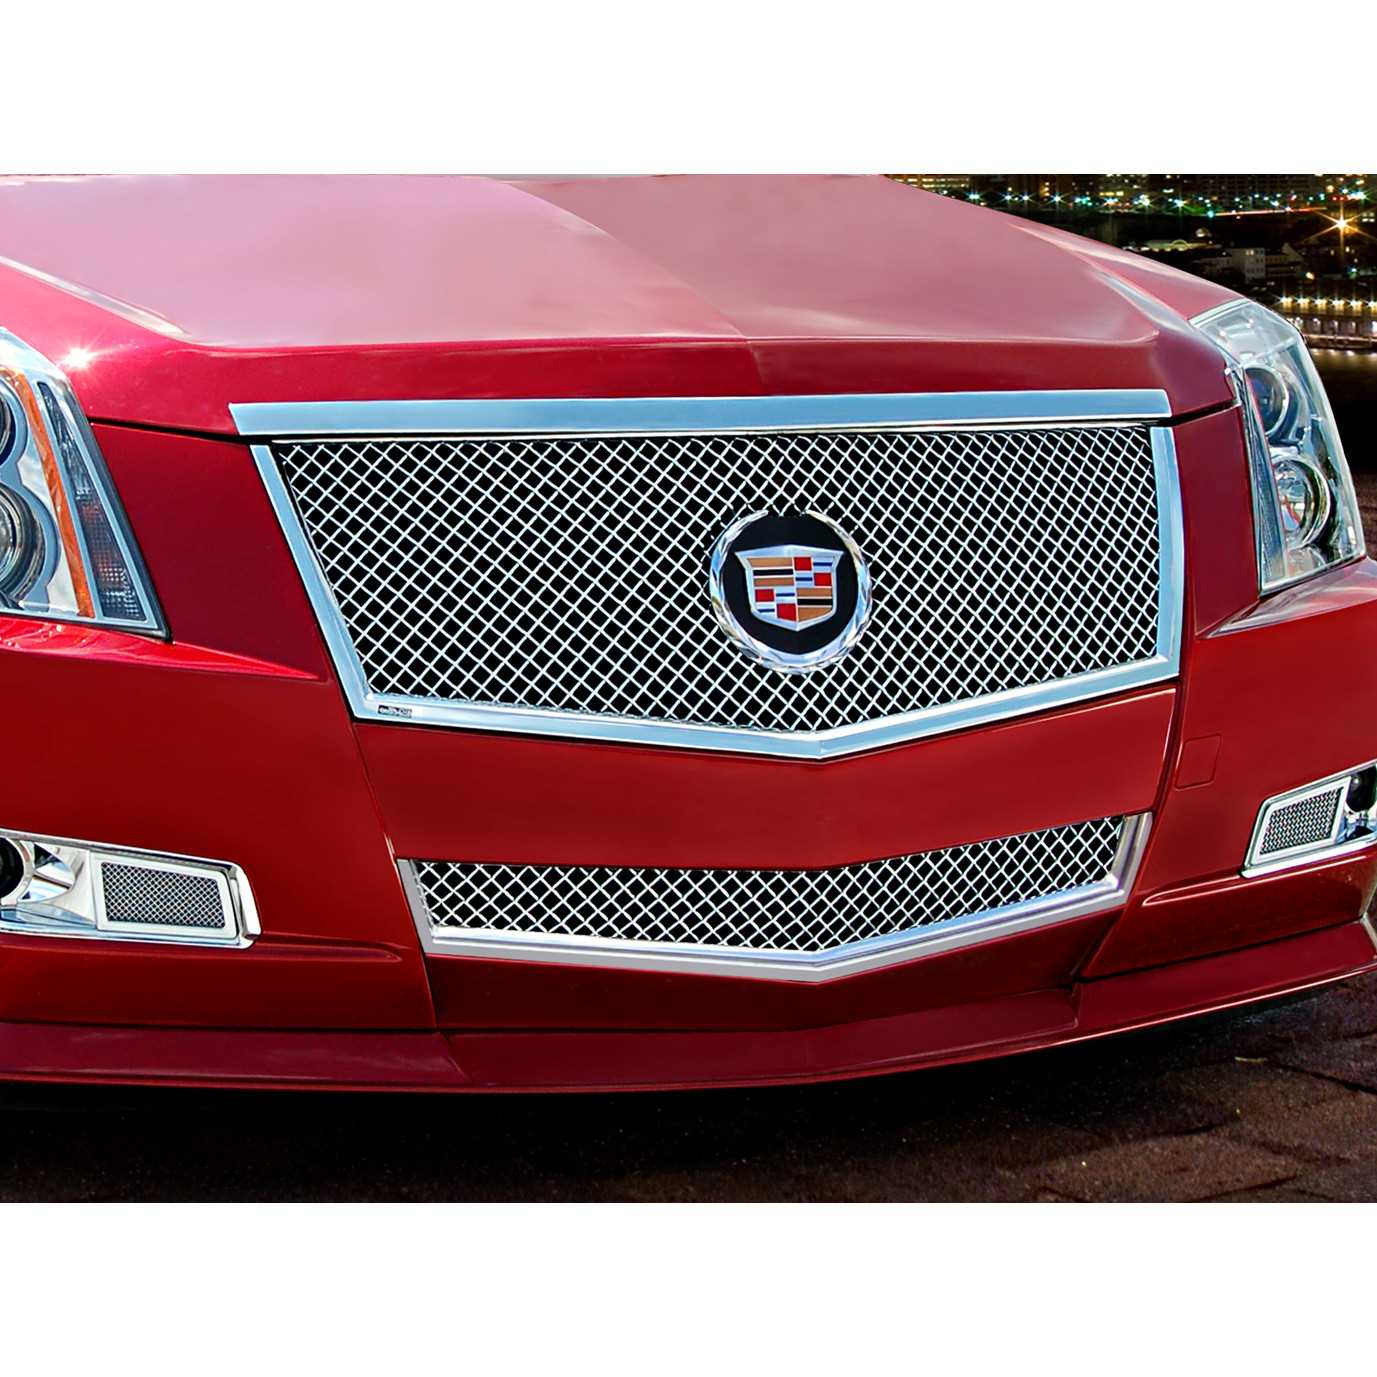 Cadillac Cts 2013 Price: E&G Classics 2008-2013 Cadillac CTS Grille 2Pc Classics Heavy Mesh Grille